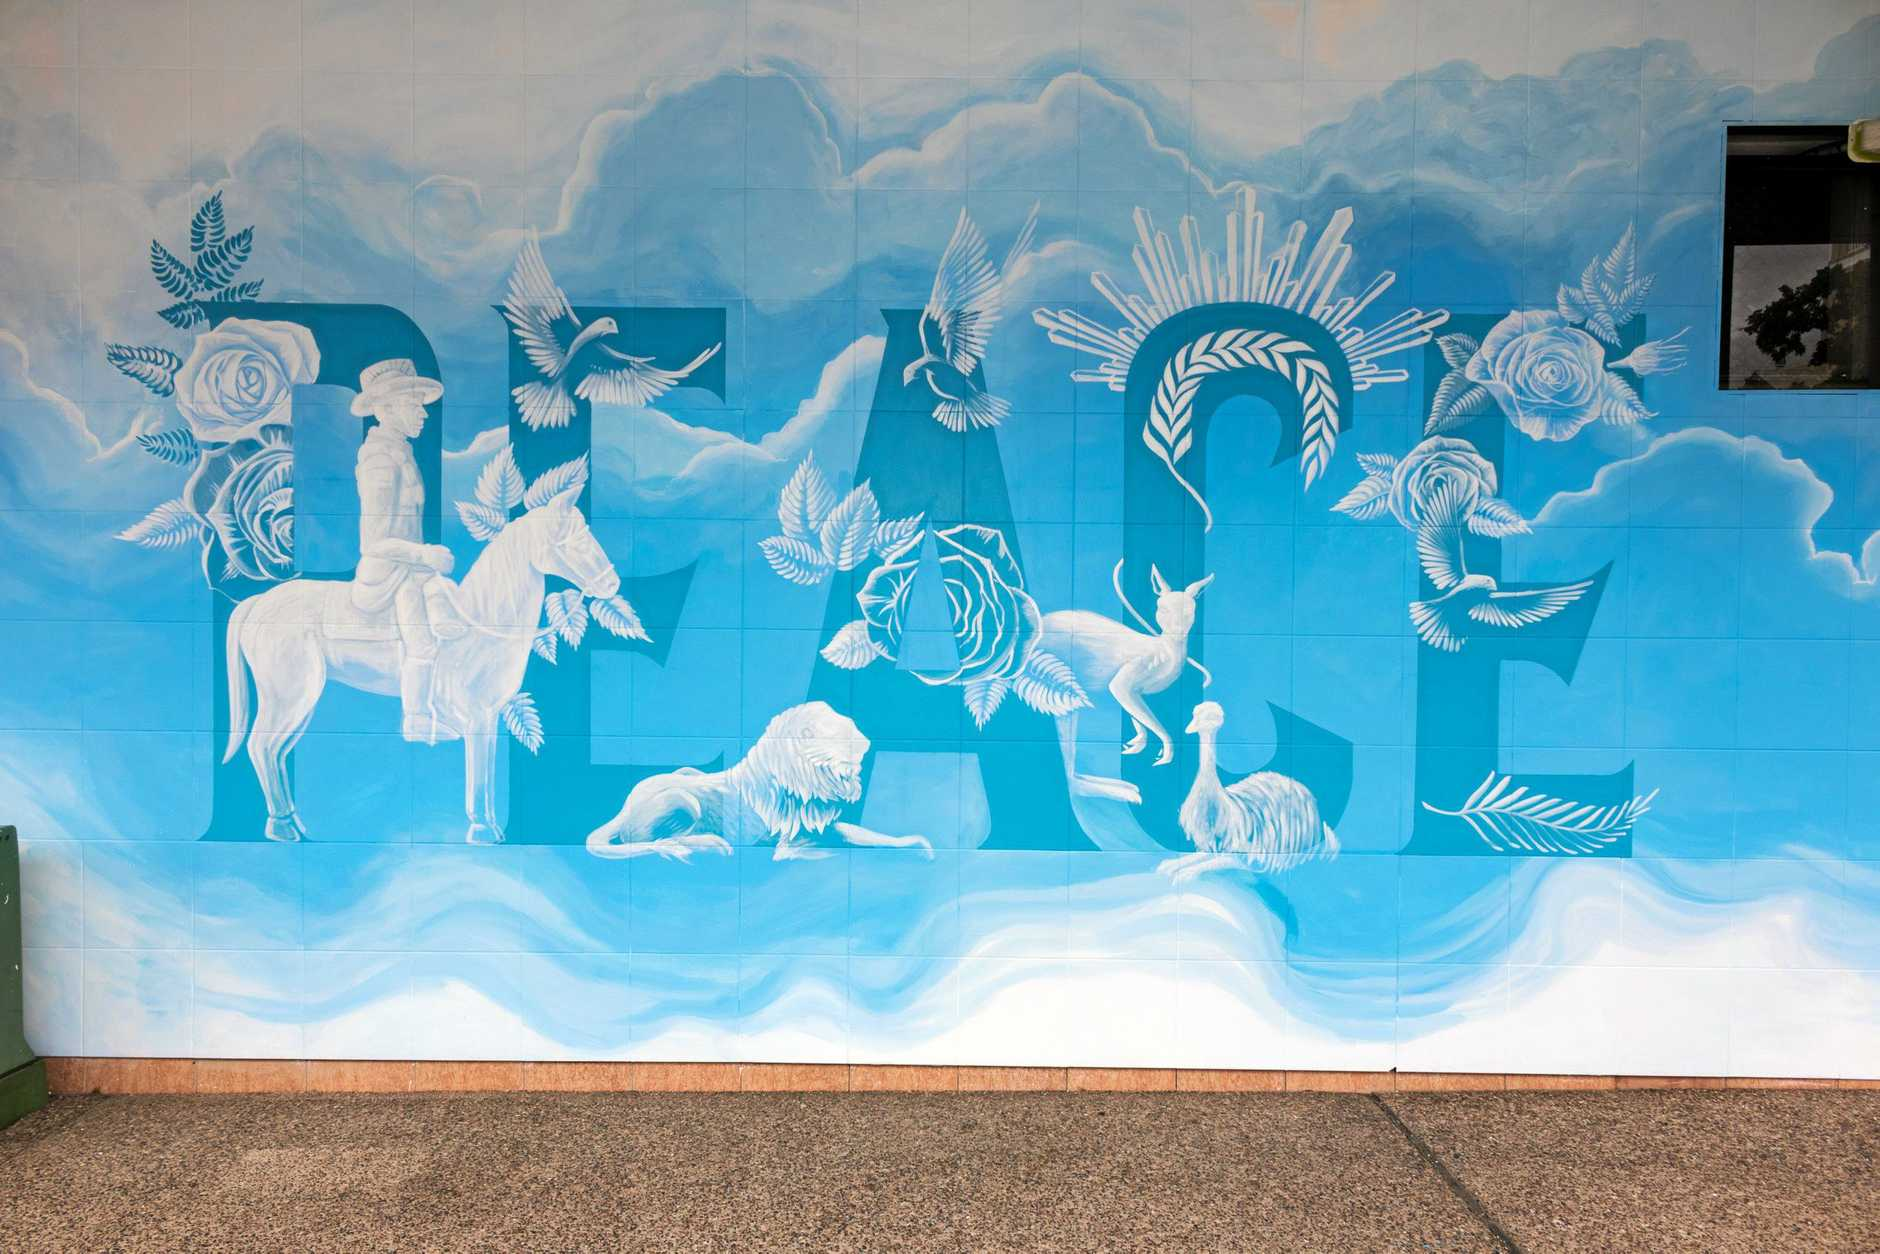 A new mural that accompanies the Peace Cake has now been completed.